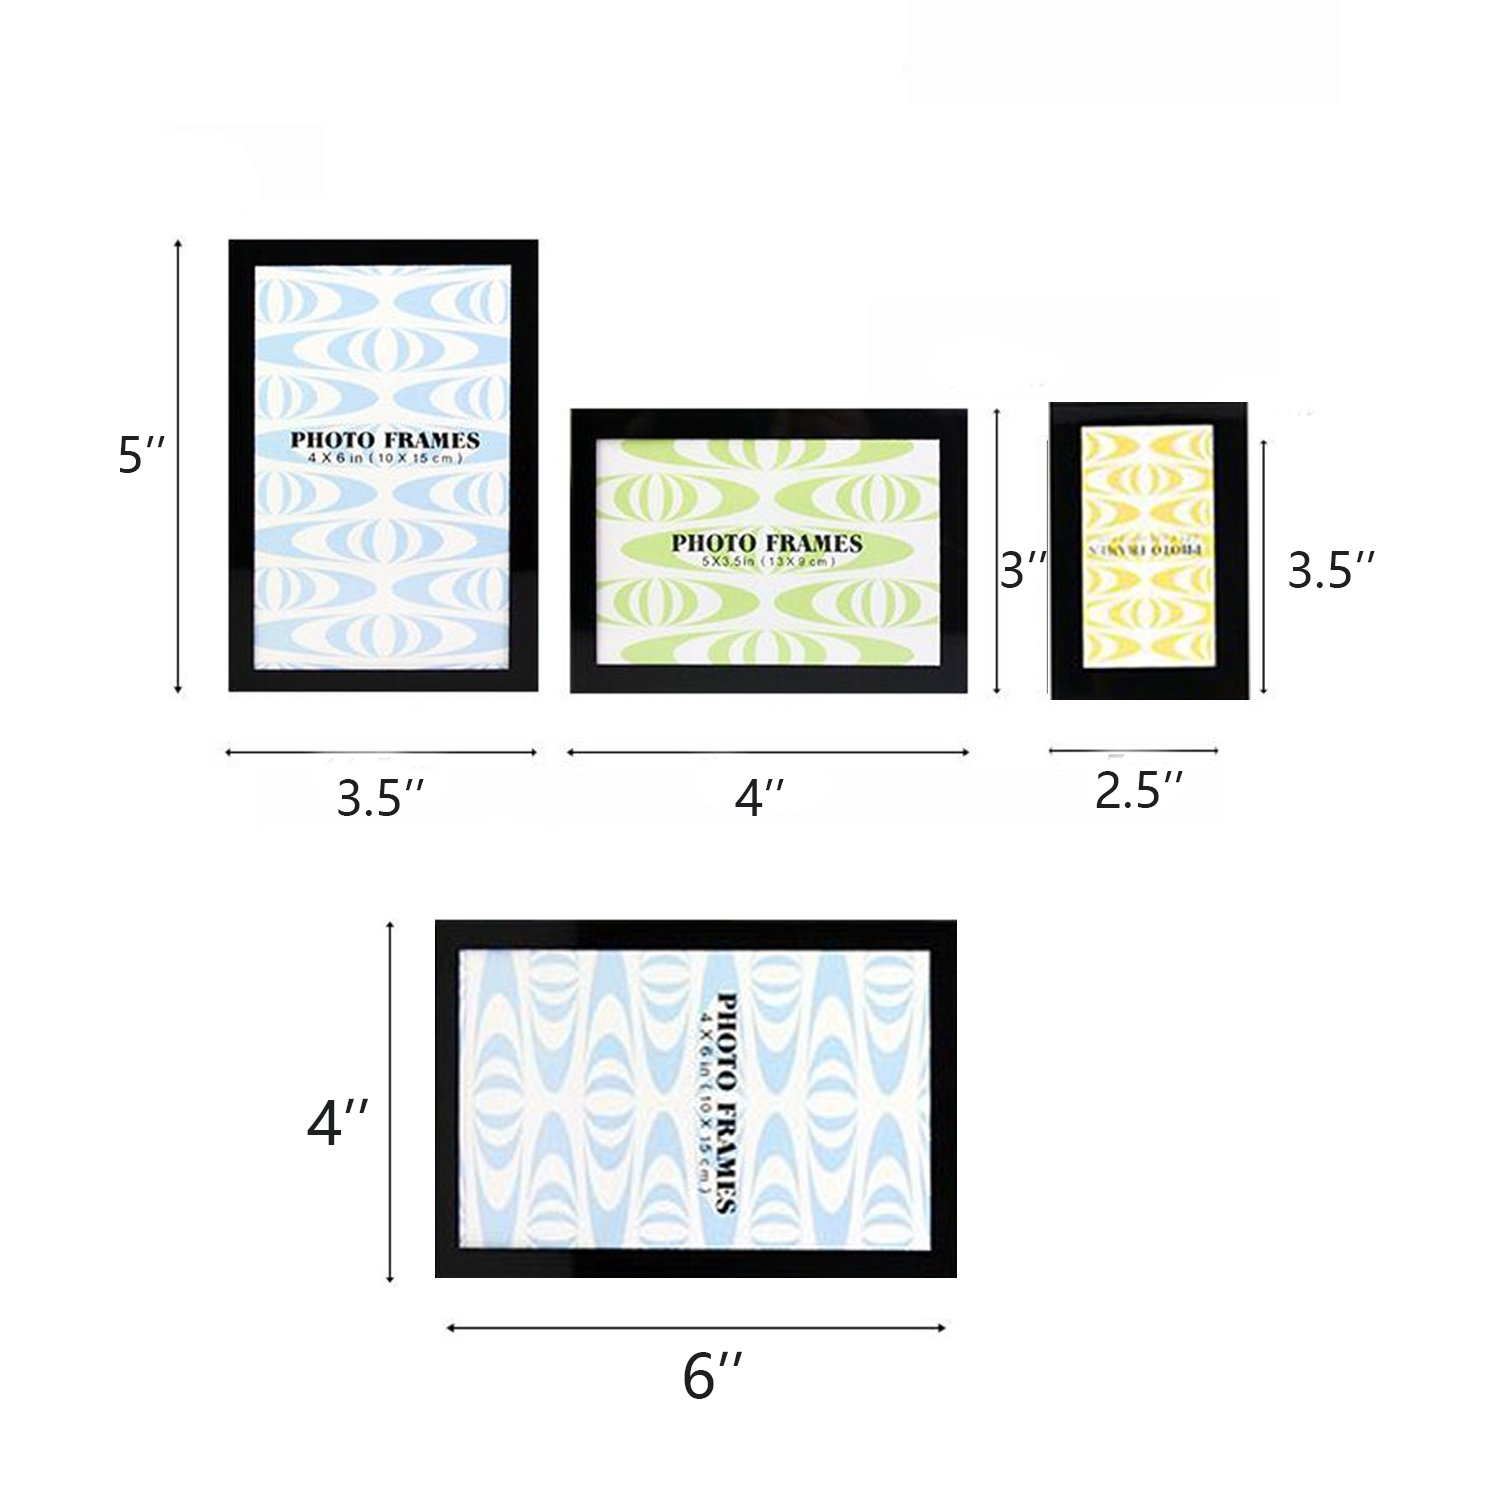 Lausatek Magnetic Picture Frame Photo Collage For Refrigerator